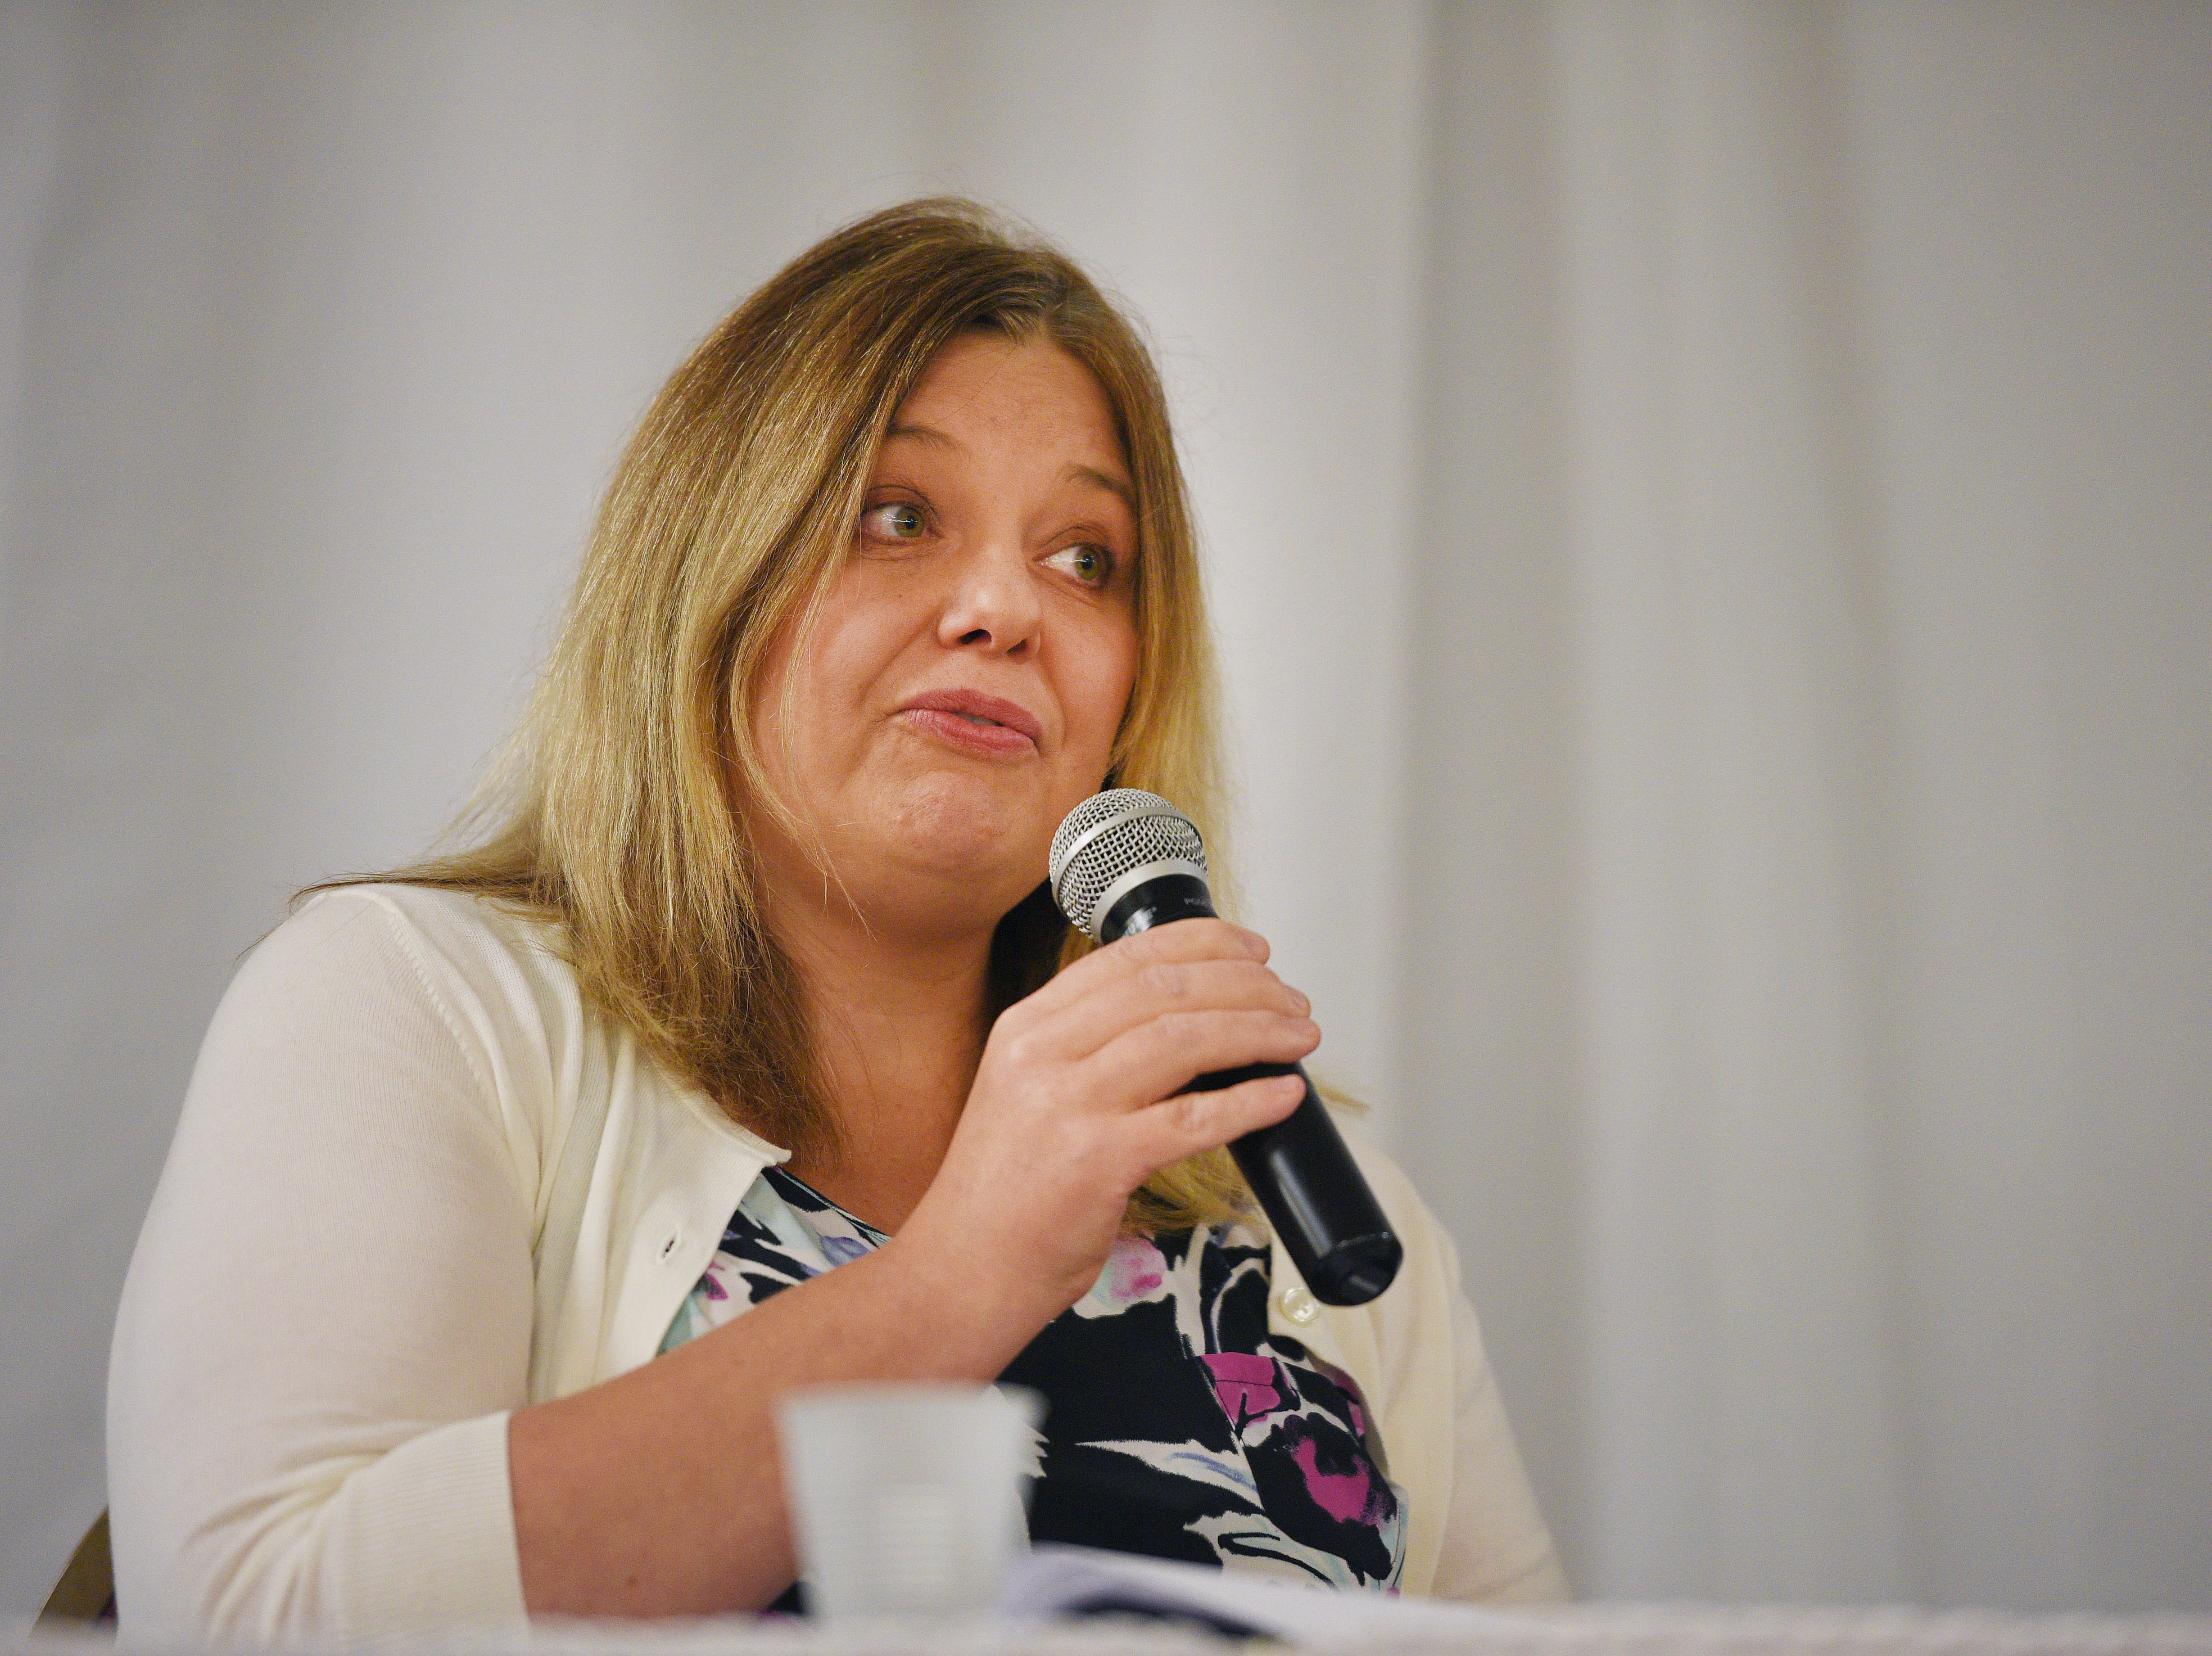 Legislative candidate Laura Swier Kotelman (D) answers questions from constituents Thursday, Sept. 27, at Dakota Plains Event Center in Hartford. Candidates discussed Initiated Measure 22, health care and spending priorities.